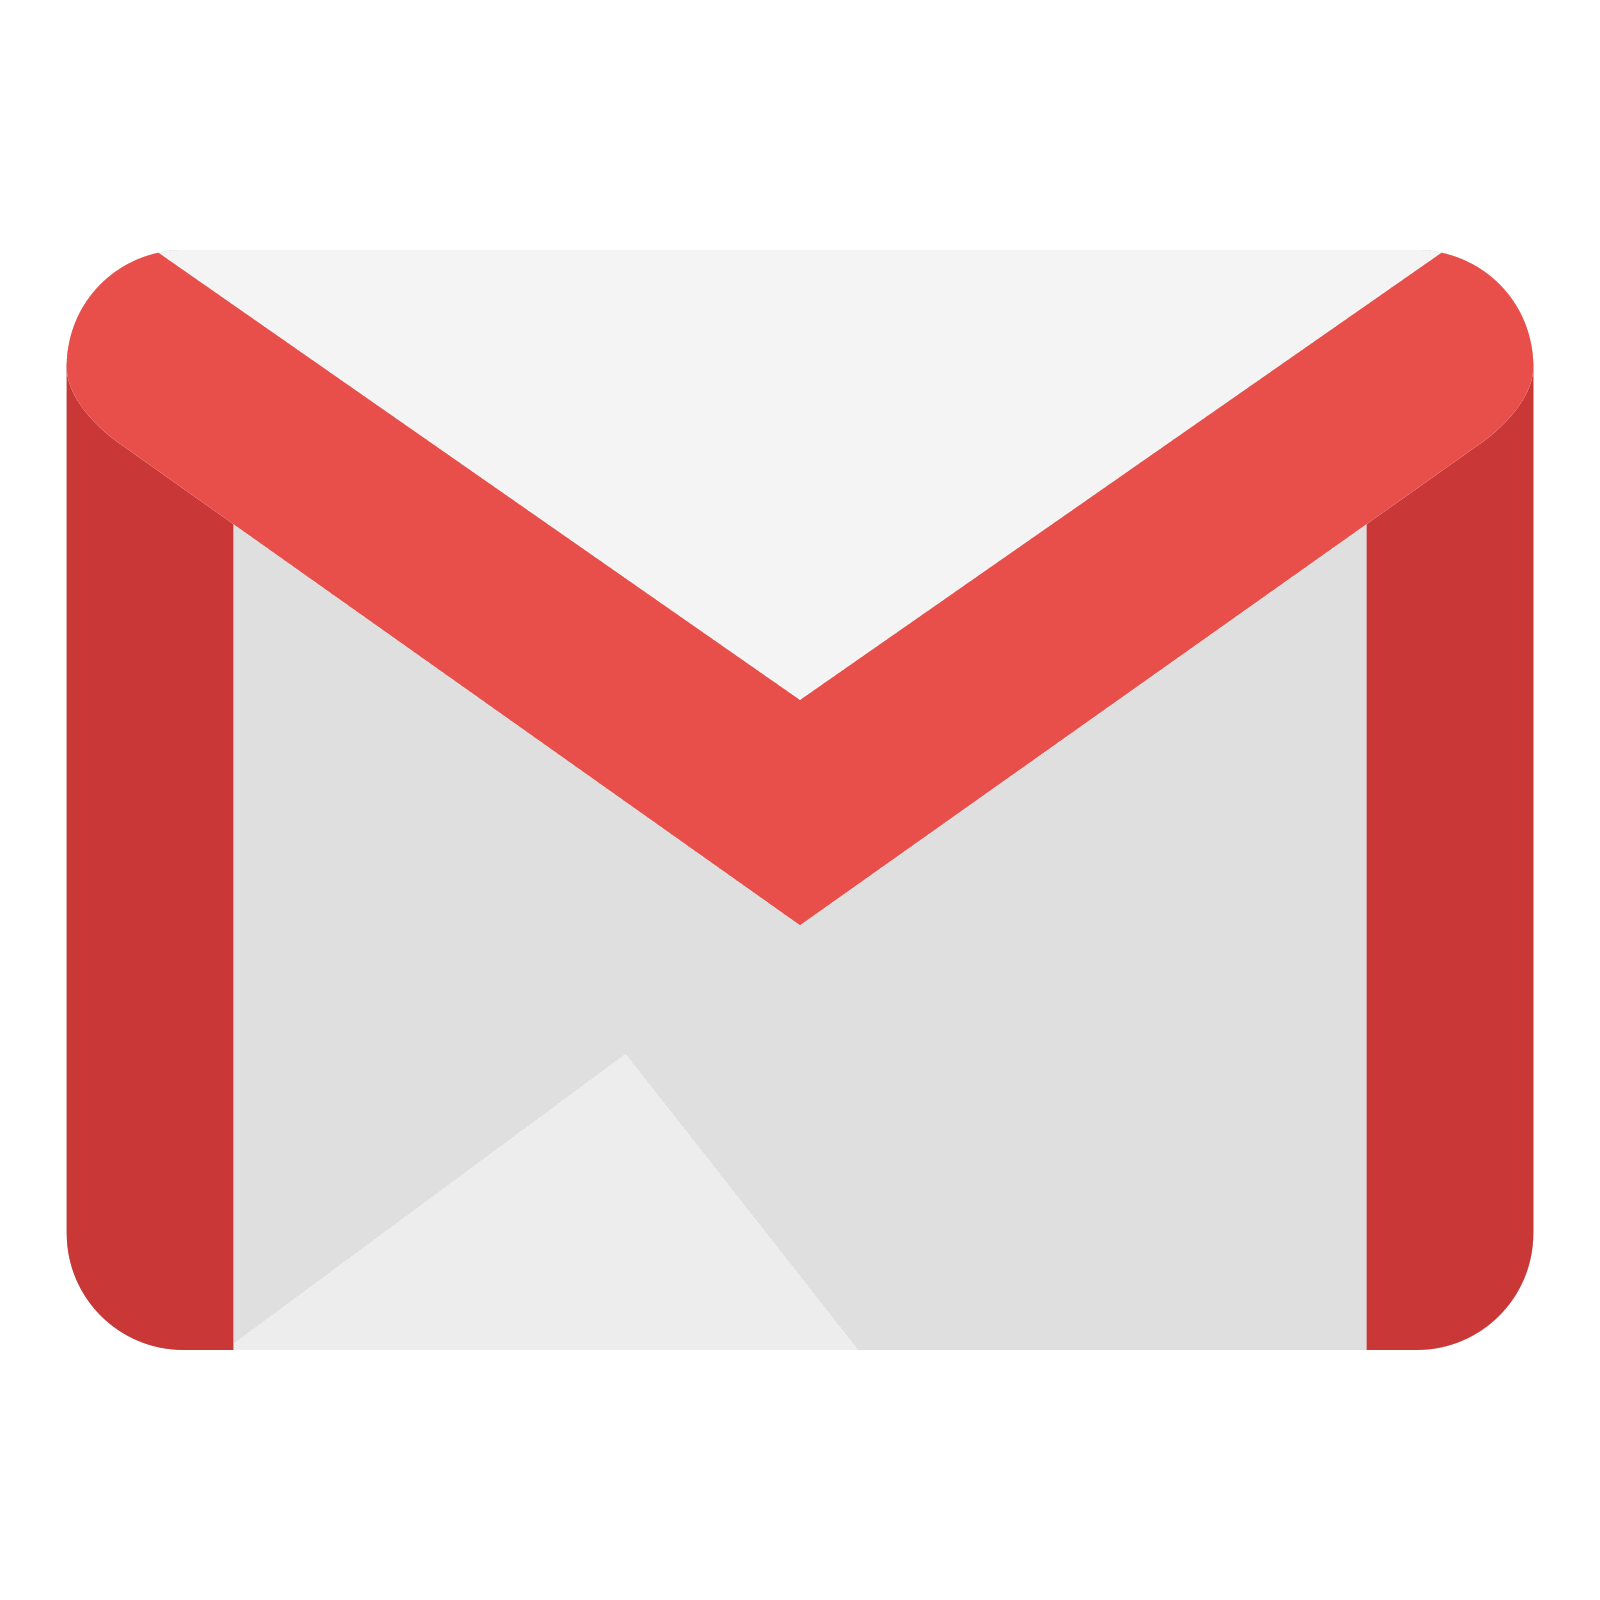 Gmail Vector PNG - 102234